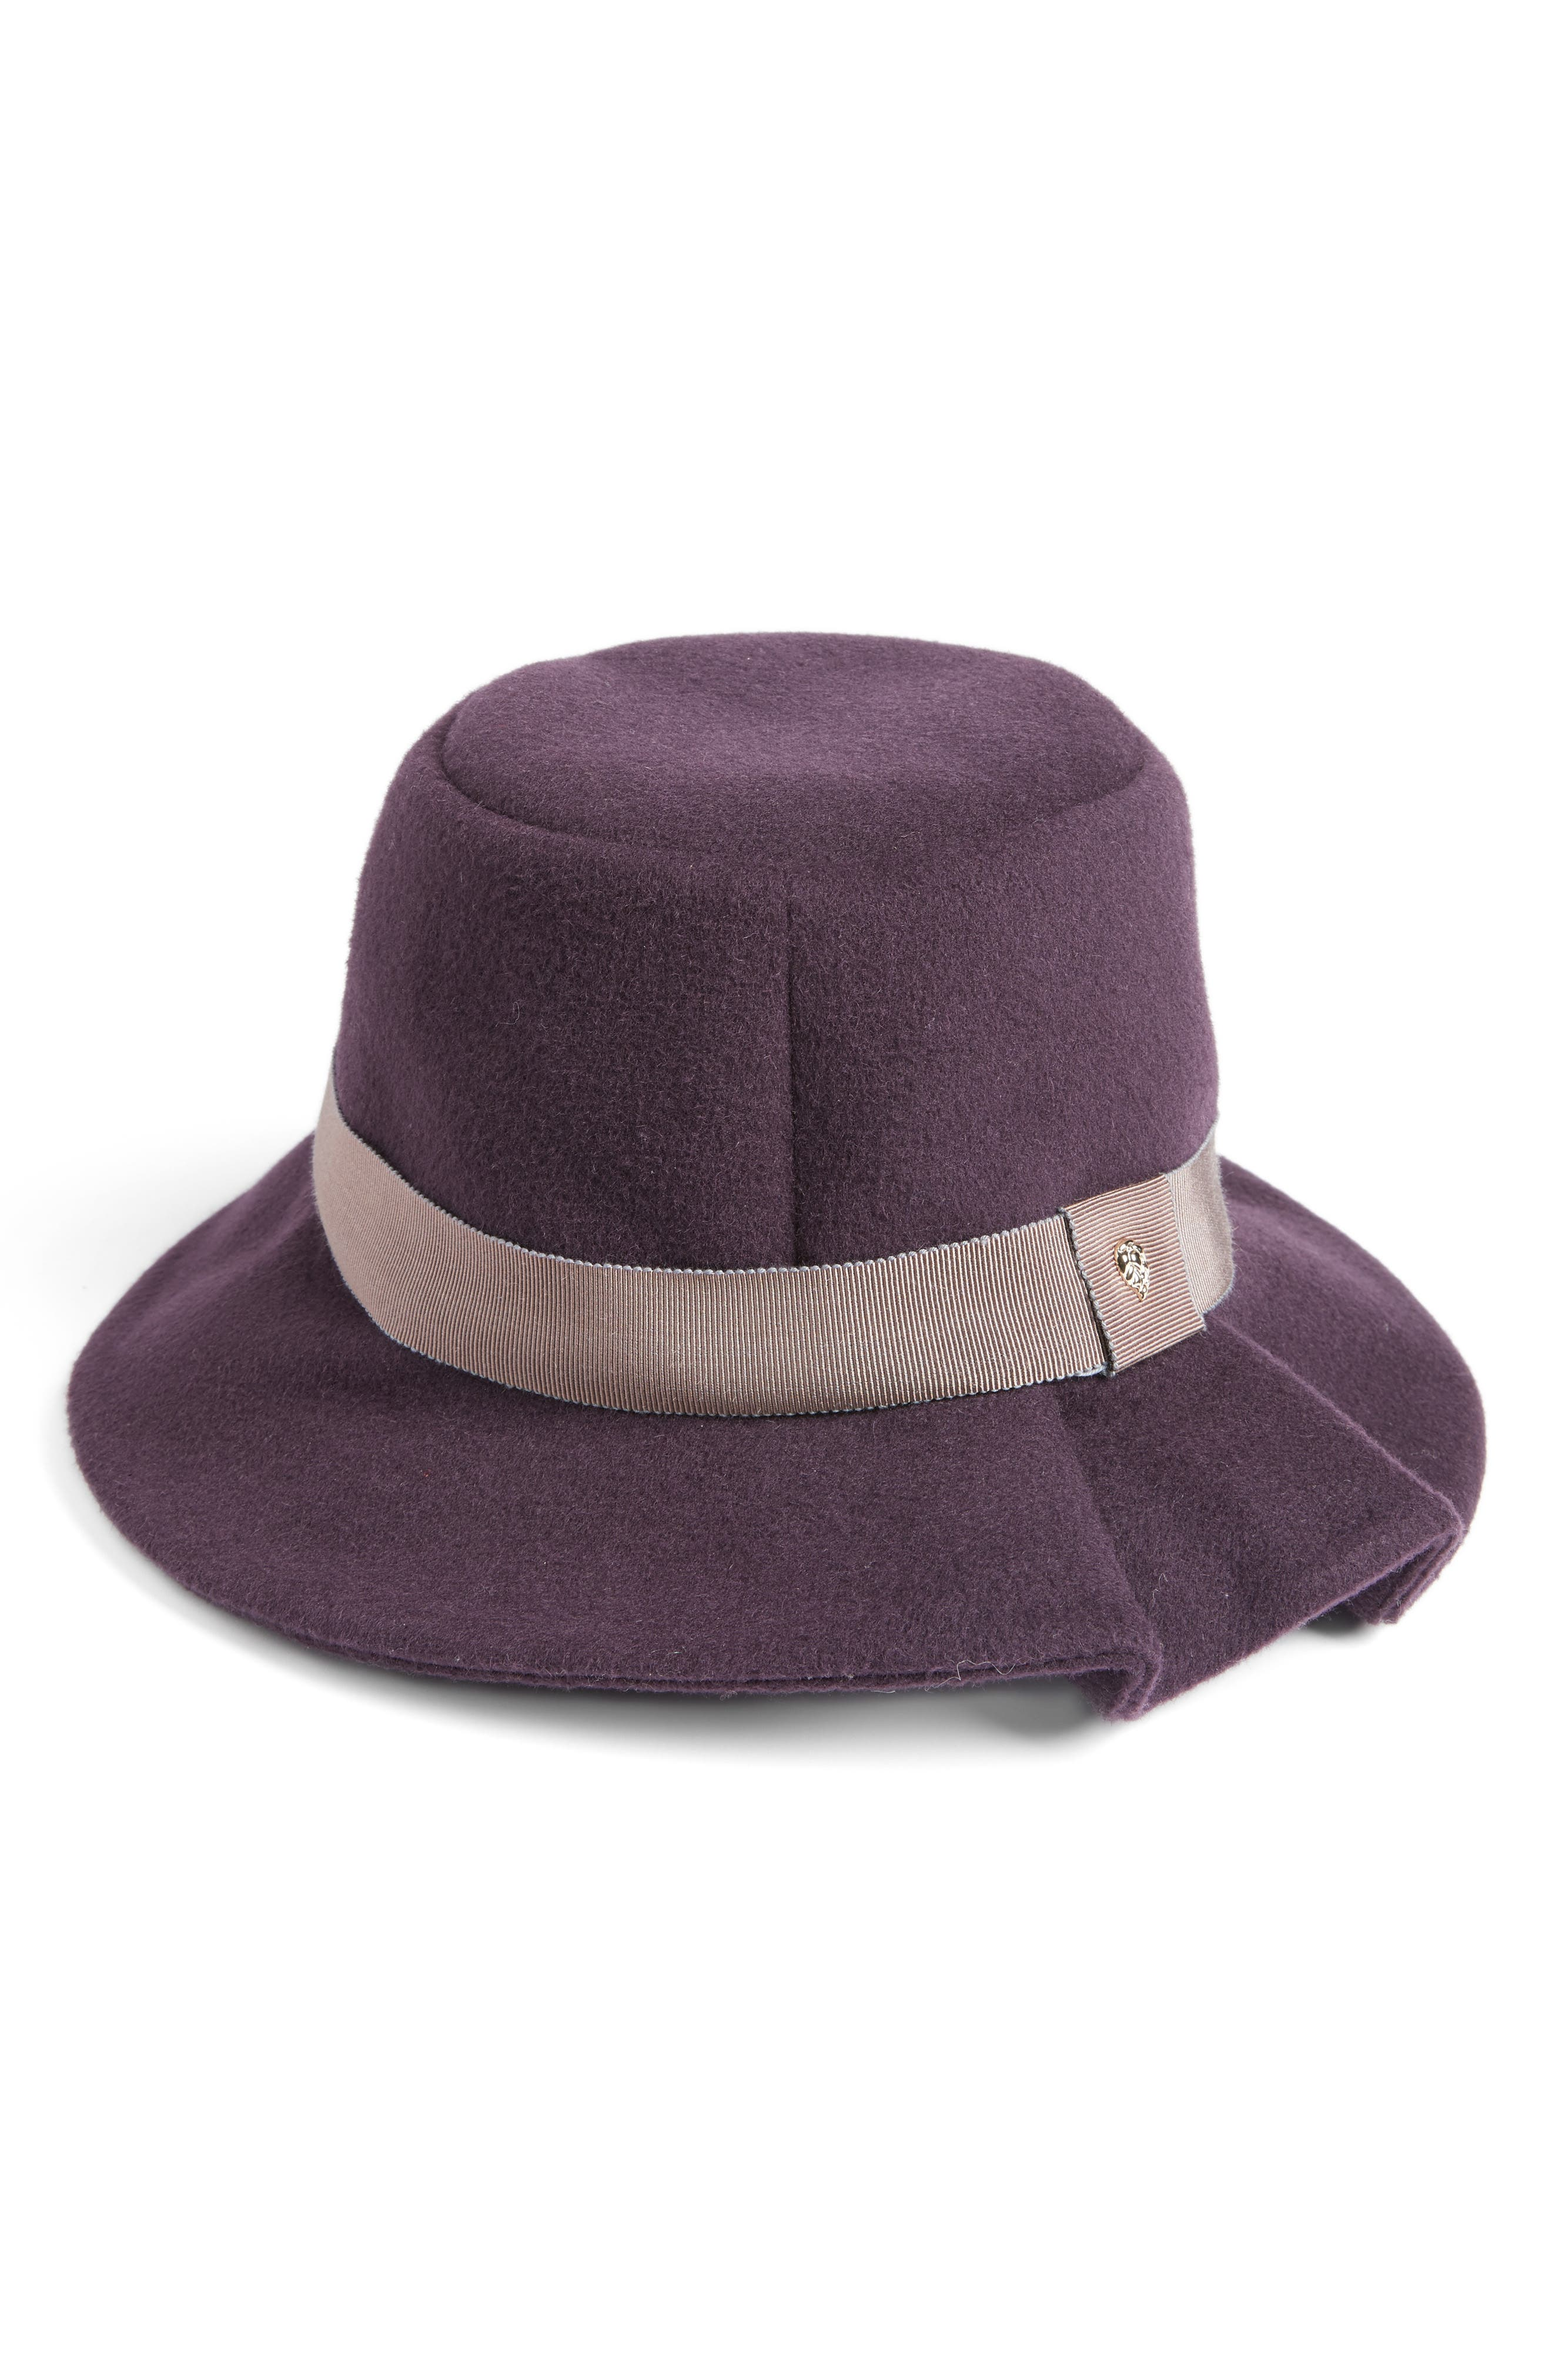 Luxe Tapered Bucket Hat,                             Main thumbnail 1, color,                             Aubergine